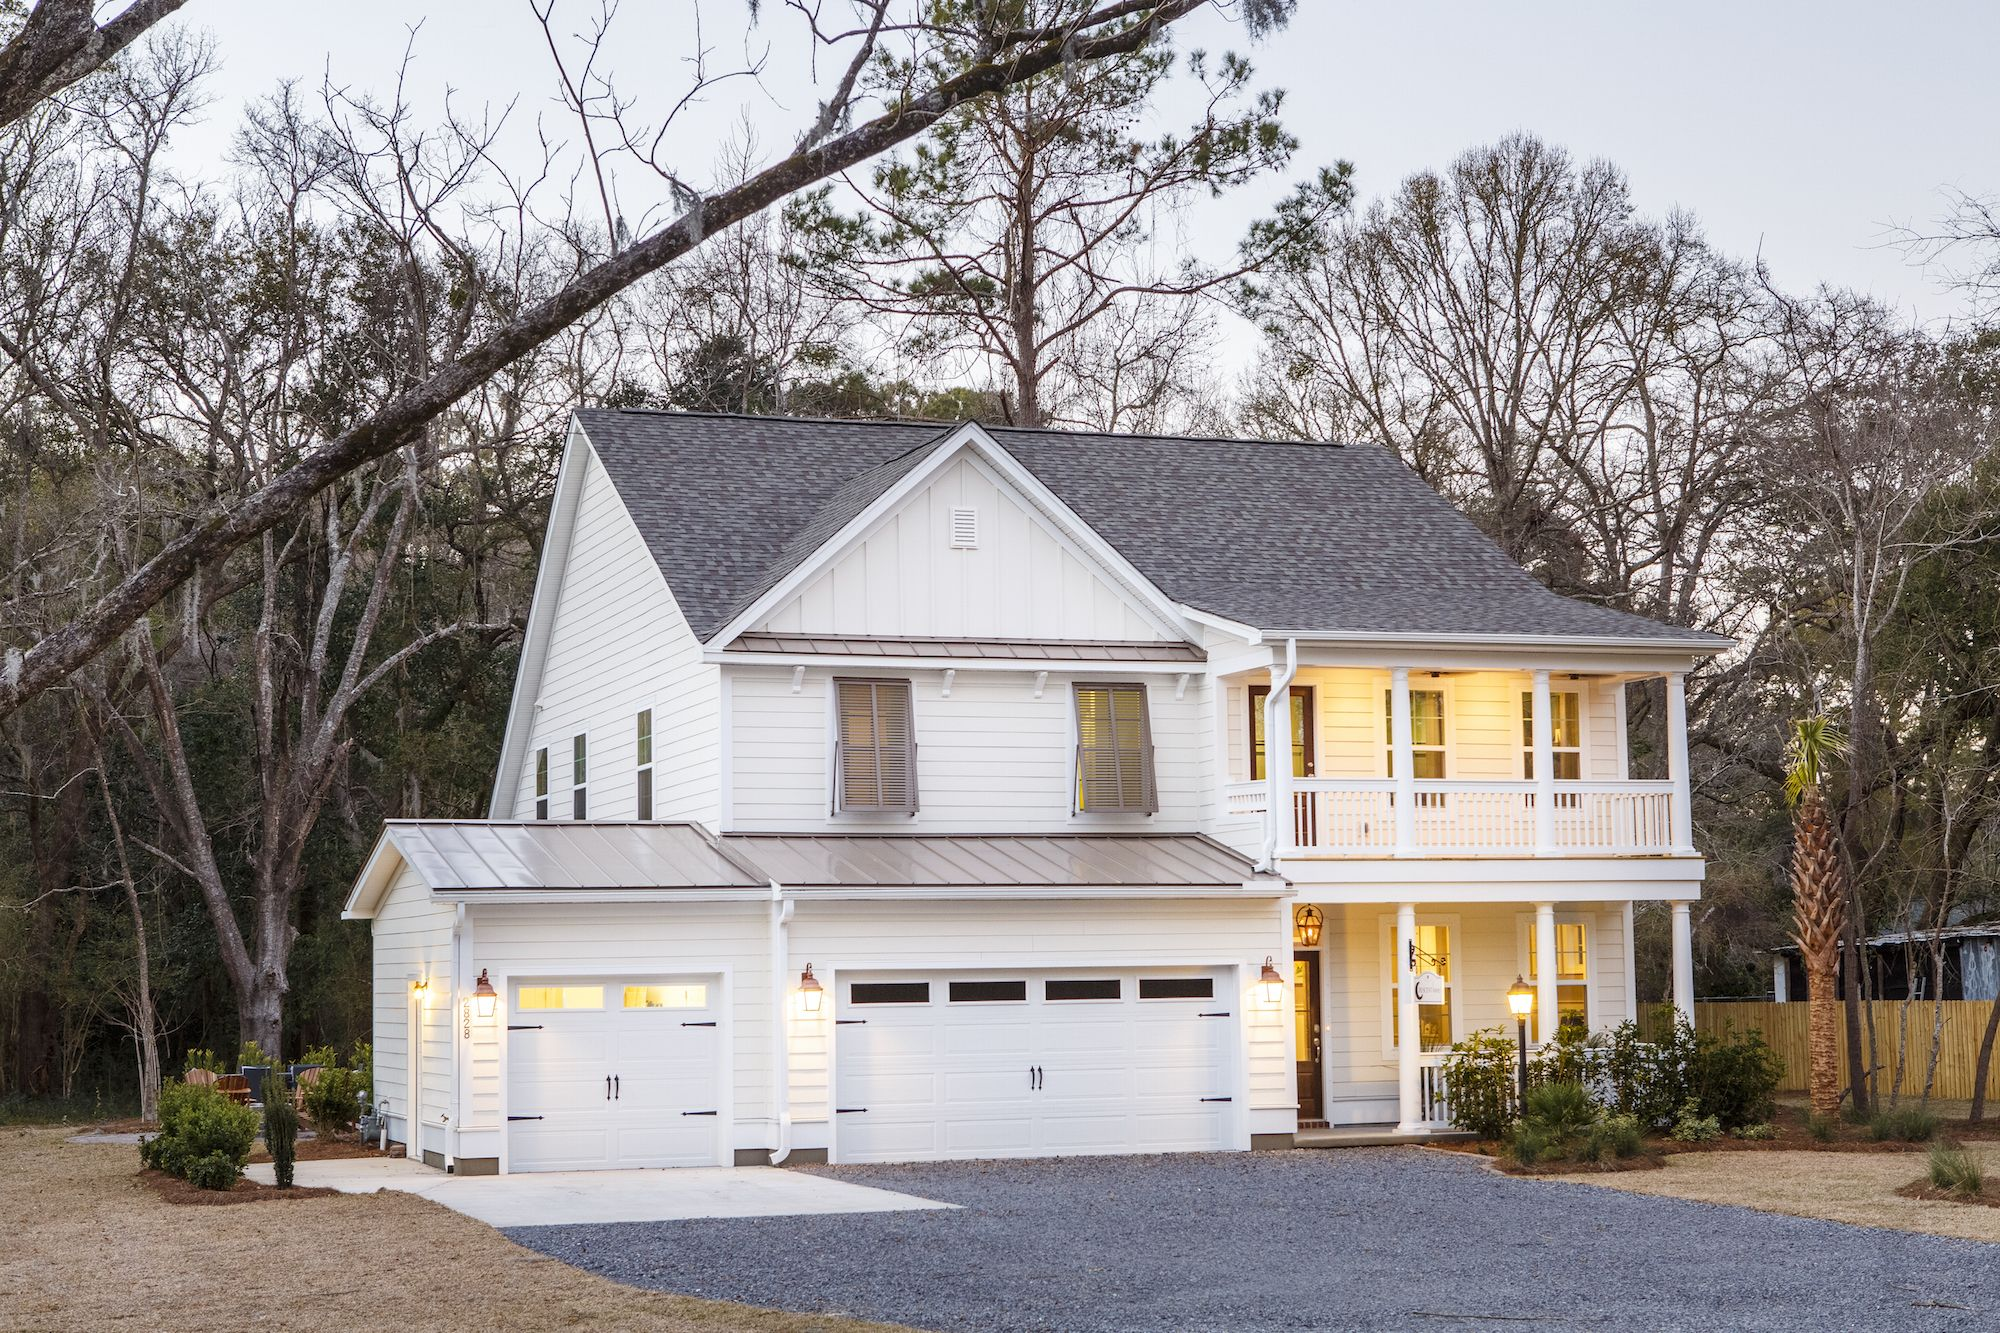 Home in Waterloo Estates on Johns Island built by Crescent Homes